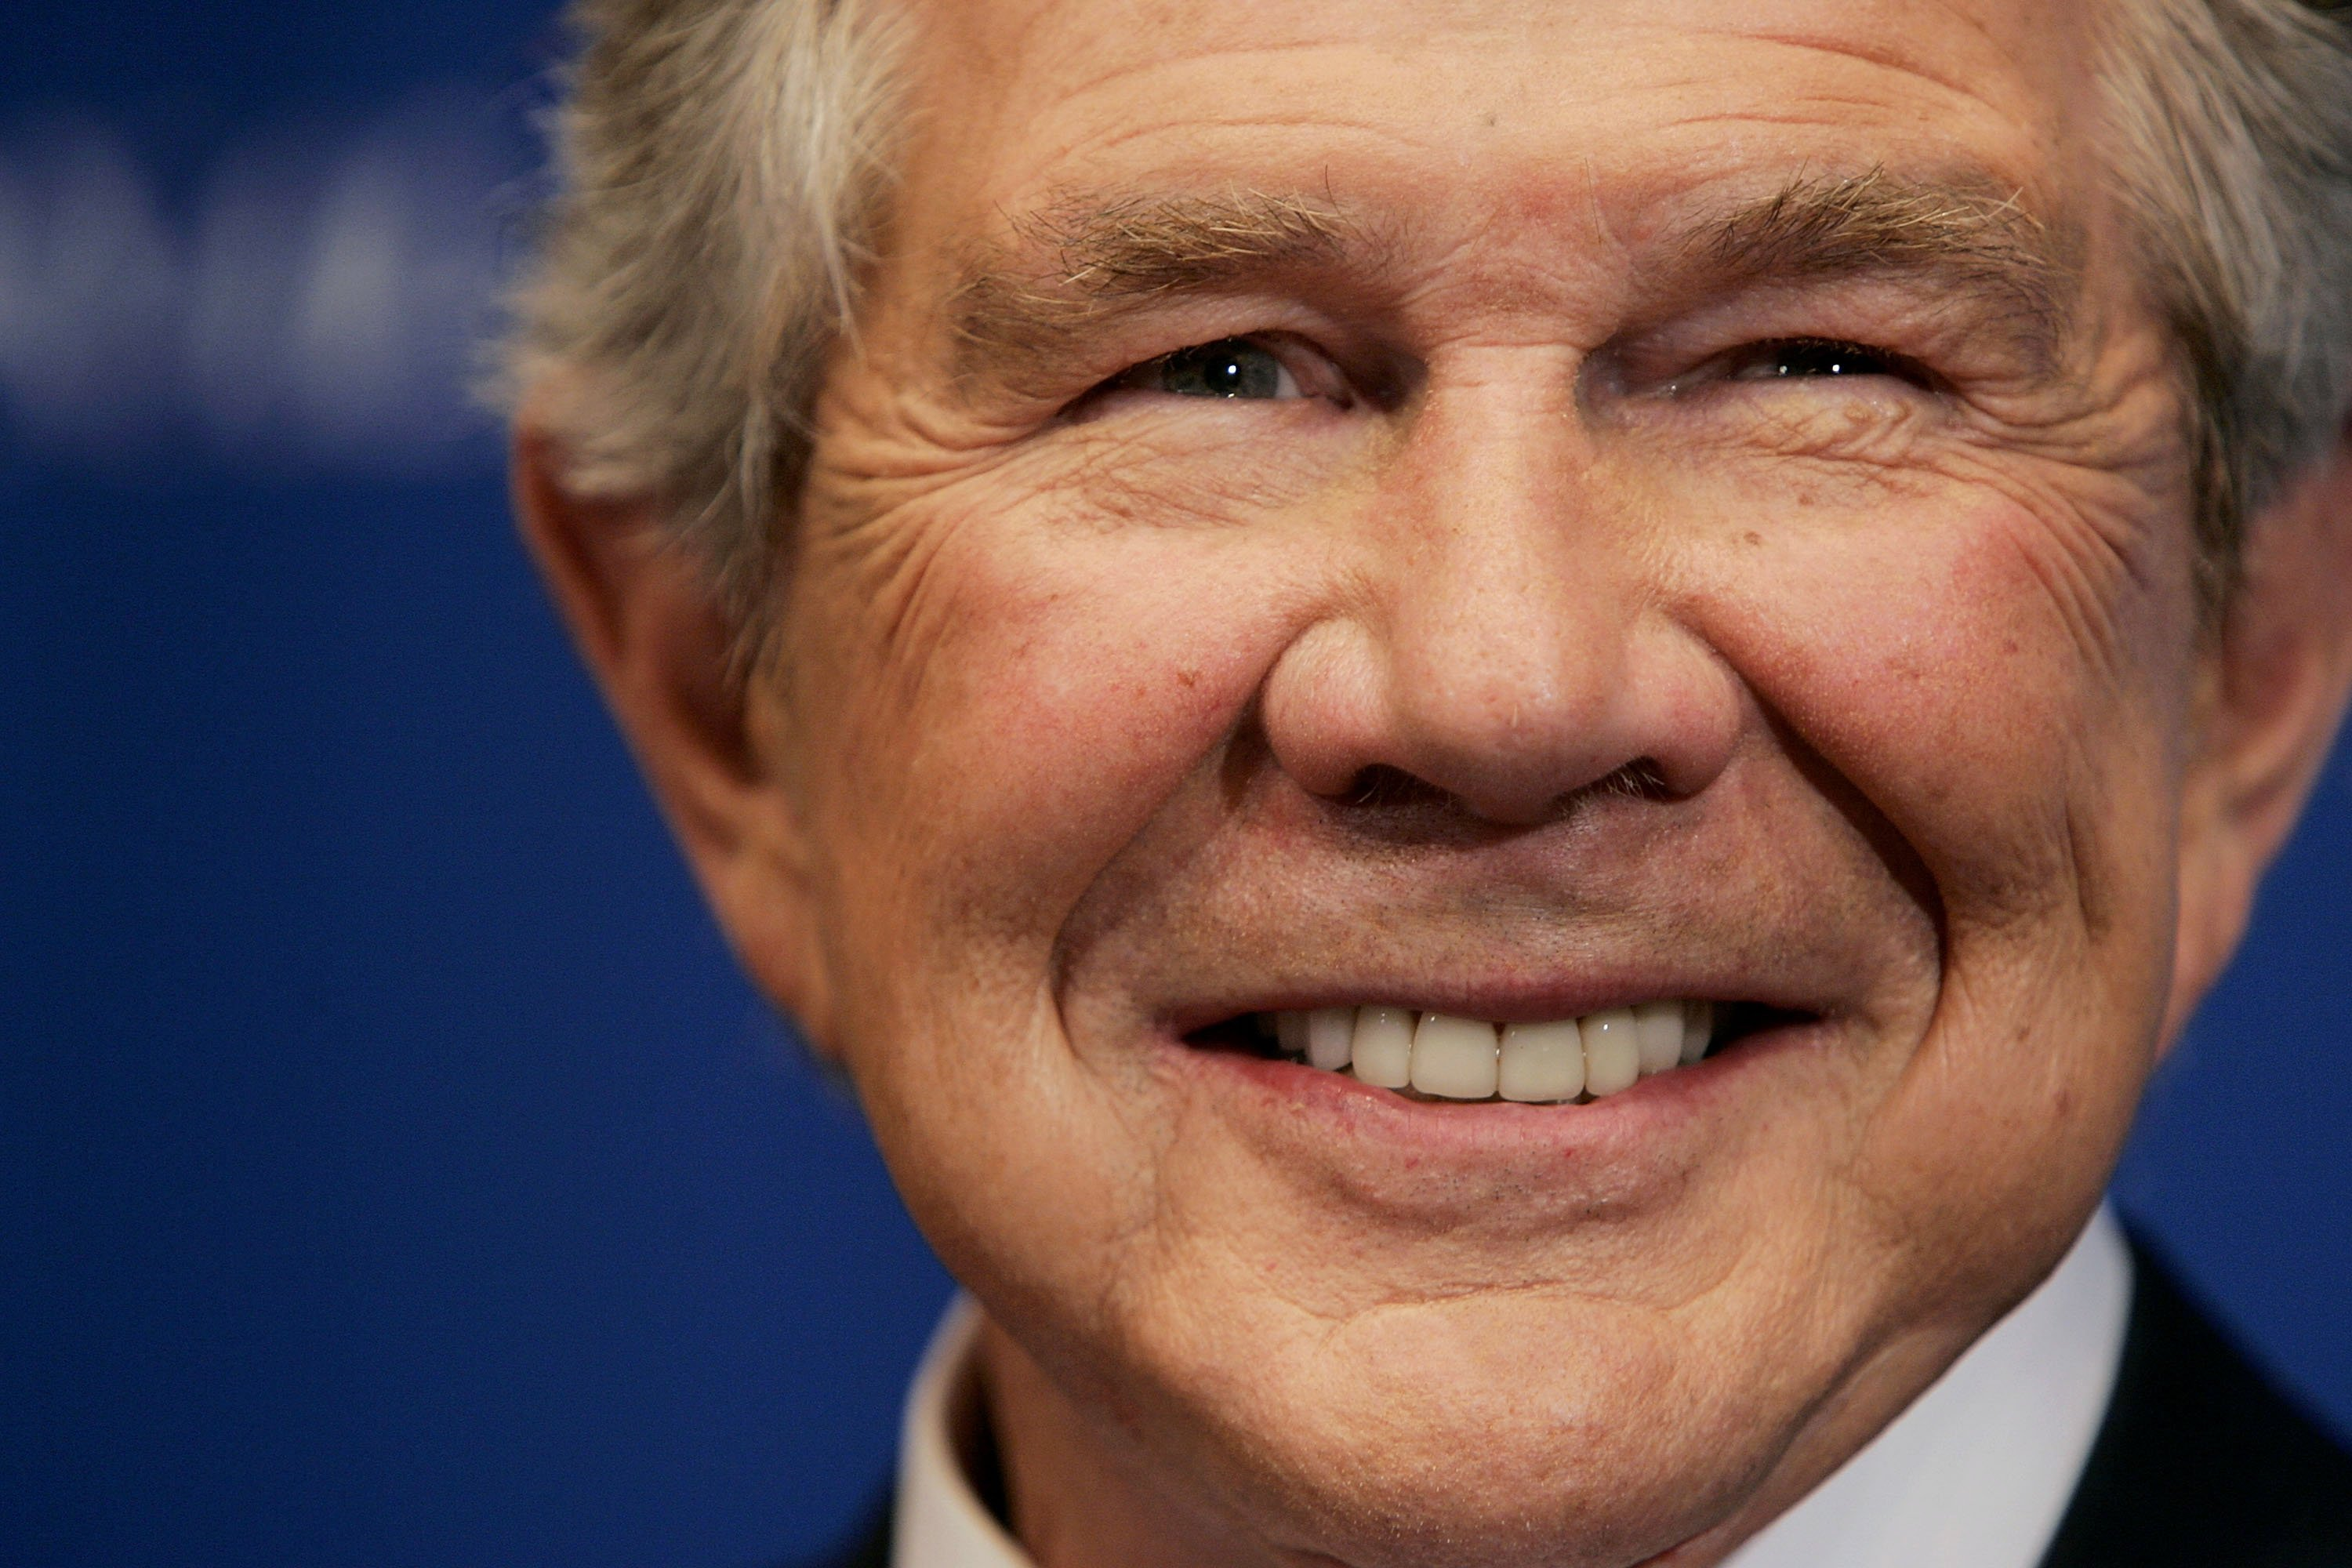 Pat Robertson, founder of CBN, smiles as he is introduced before speaking at the National Press Club on February 15, 2005 in Washington, DC. | Photo: Getty Images